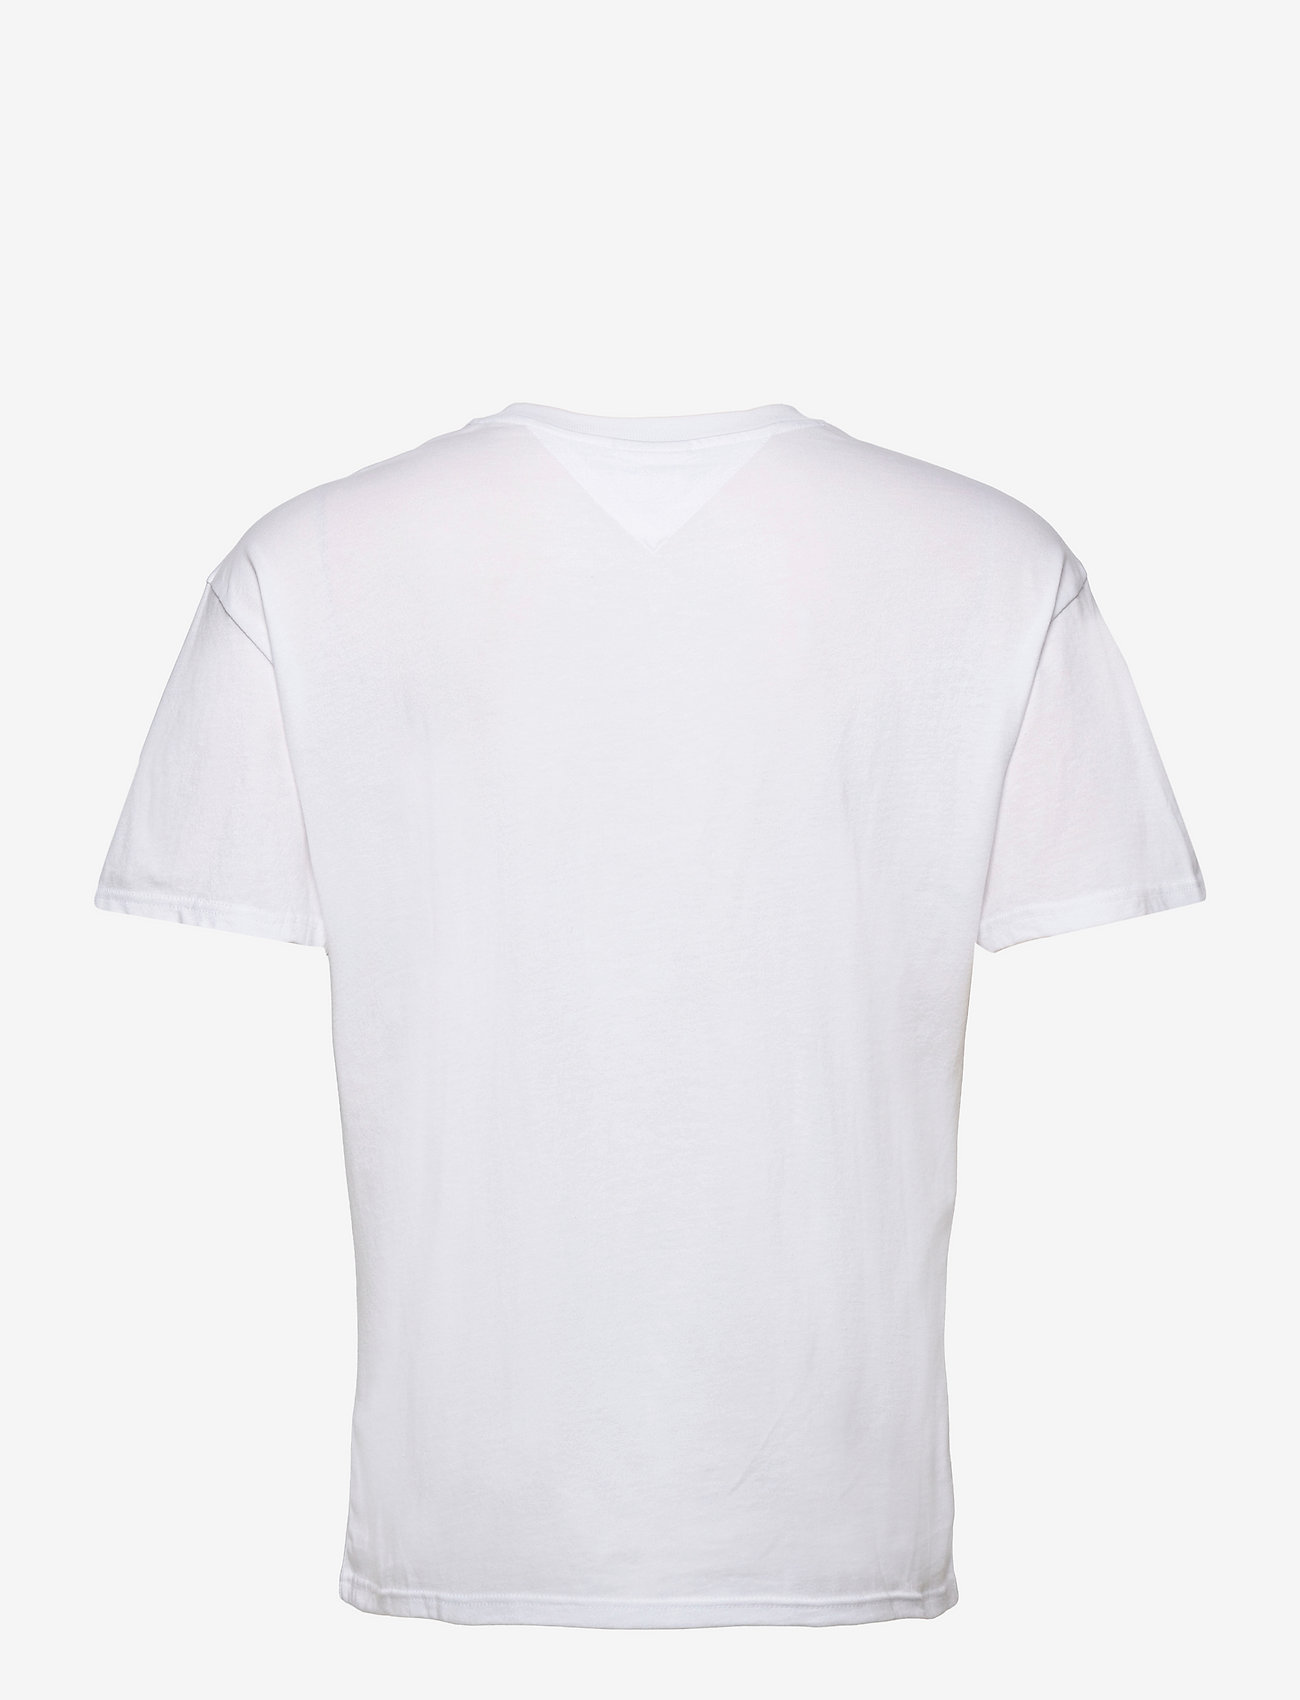 Tommy Jeans - TJM FADED COLOR GRAPHIC TEE - kortärmade t-shirts - white - 1